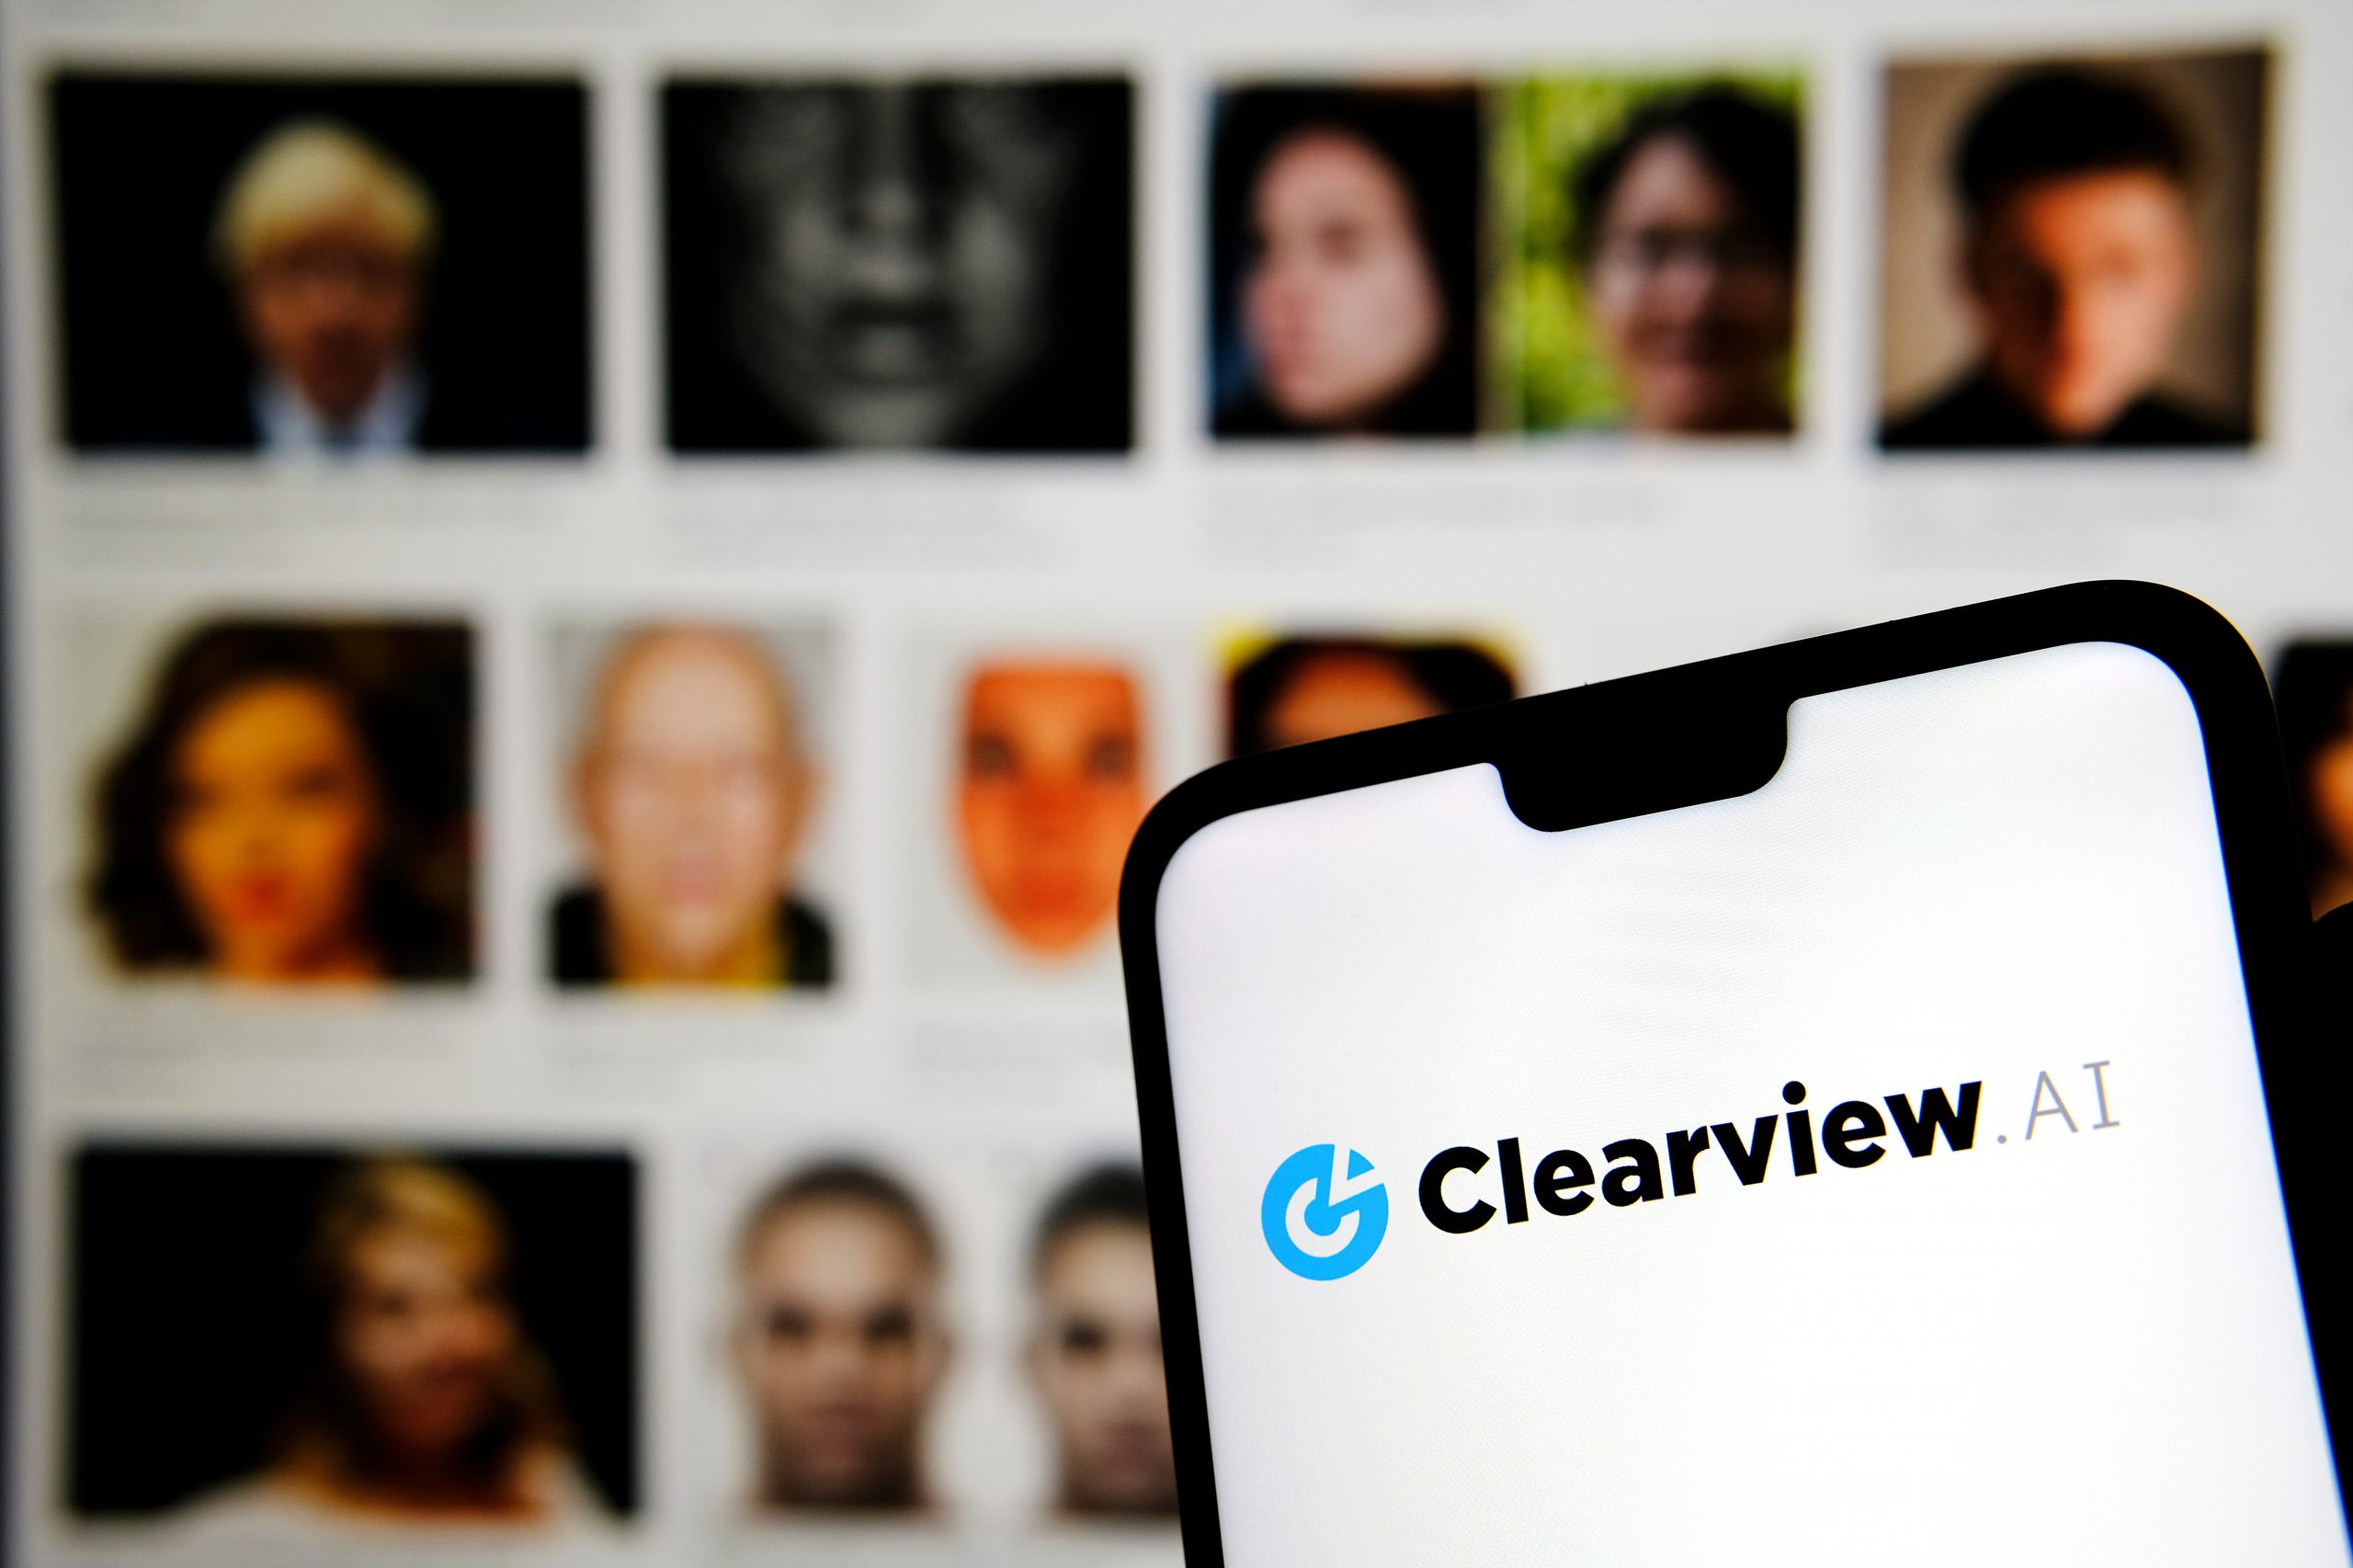 Clearview AI Breach Major Blow For Data Privacy